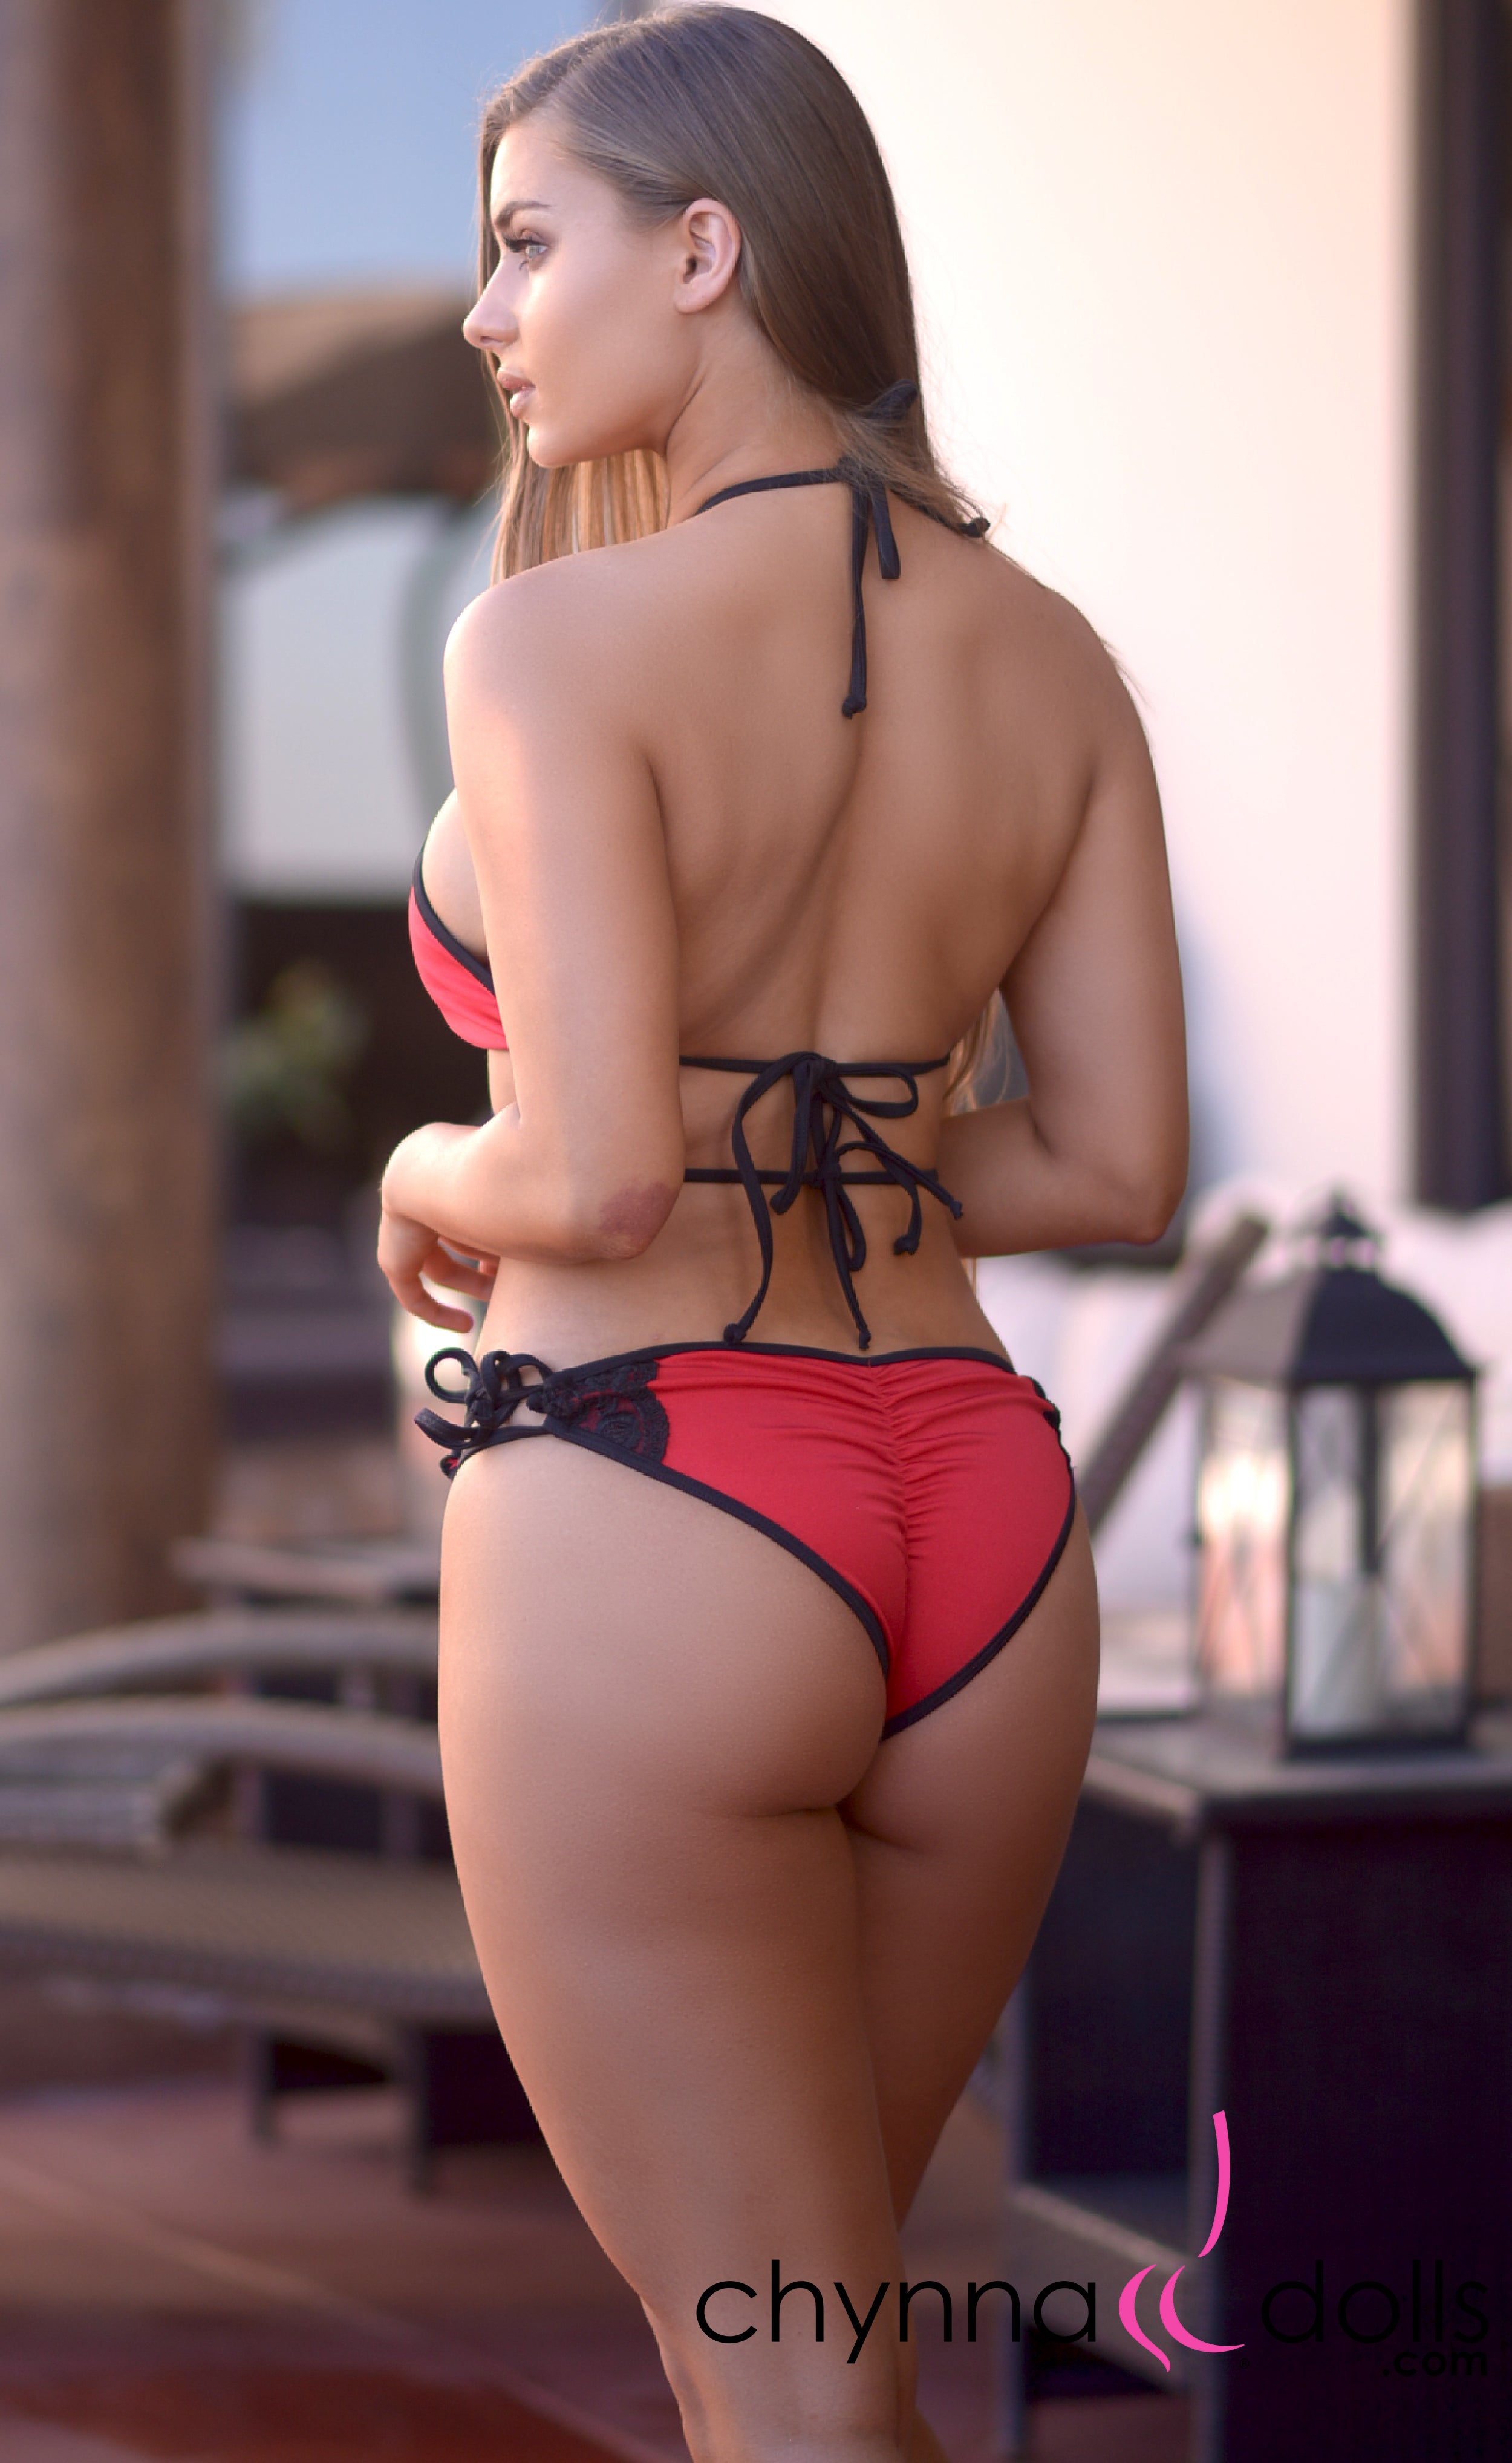 Anguilla: Lace Up Halter Bathing Suit in Red with Black Lace Detail